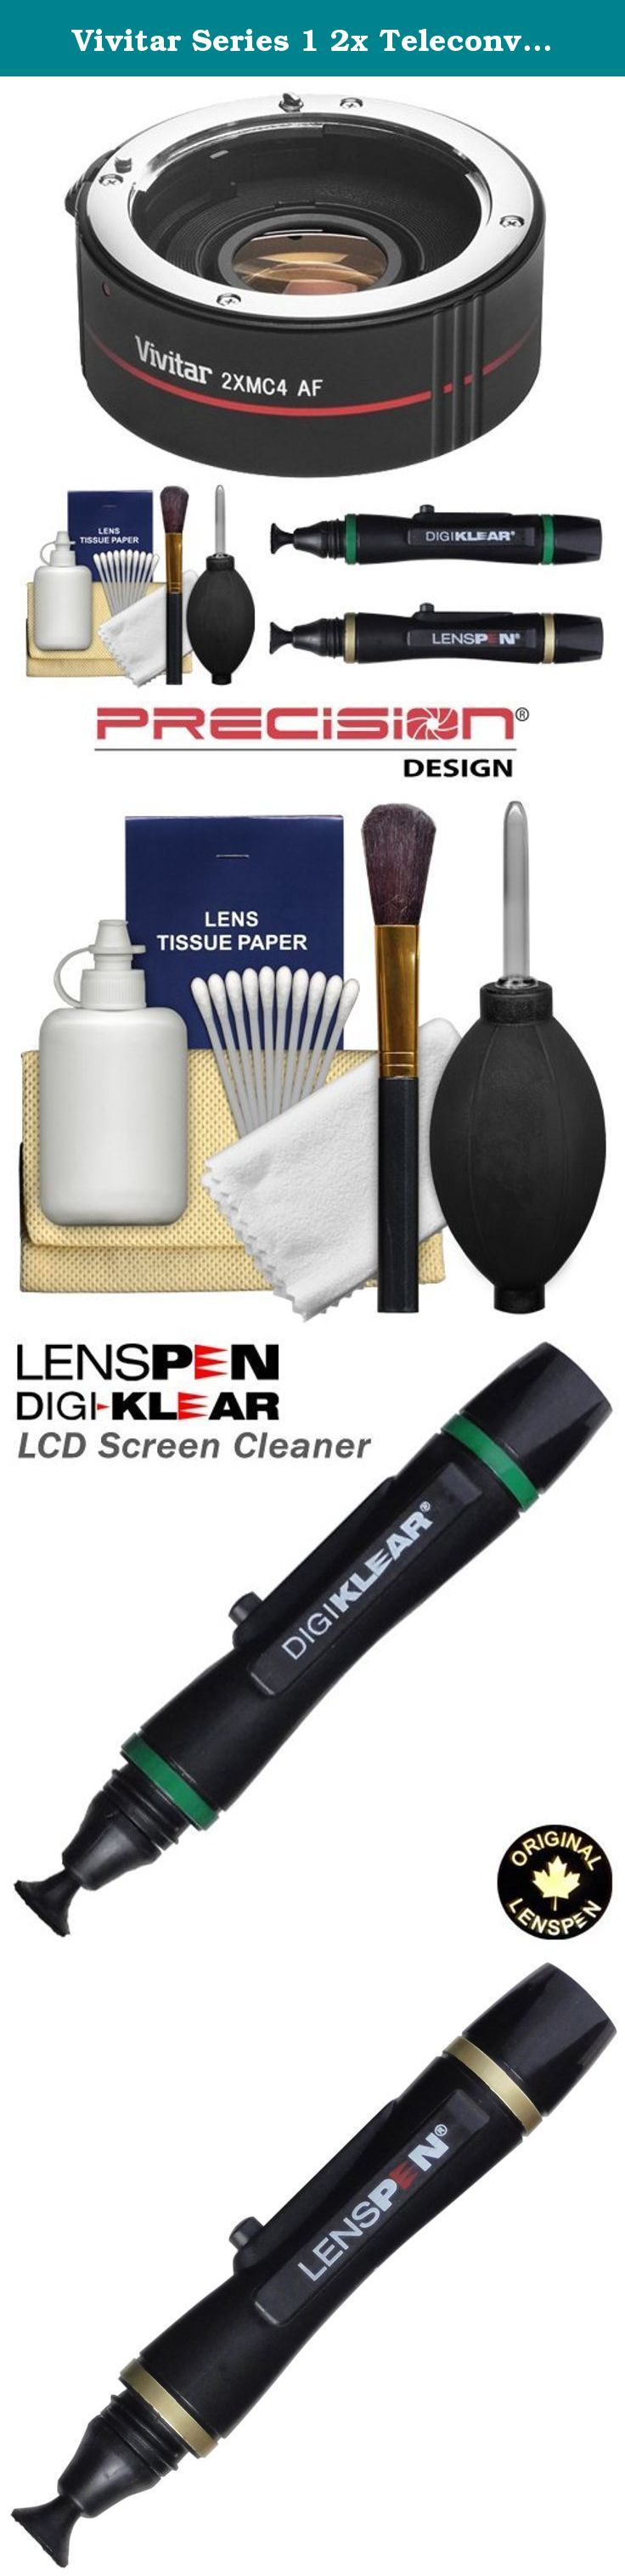 Vivitar Series 1 2x Teleconverter (4 Elements) Kit + Lenspens + Cleaning Kit for Canon EF Lenses & Digital SLR Cameras. Kit includes: ♦ 1) Vivitar 2x Teleconverter (4 Elements) ♦ 2) LensPen Lens Cleaning System ♦ 3) LensPen DigiKlear LCD Screen Cleaning System ♦ 4) Precision Design Deluxe 6 Piece Lens & Digital SLR Cleaning Kit This Vivitar 2x Teleconverter is the ideal accessory for any photographer looking to get closer to the action and capture distant images . With this simple…